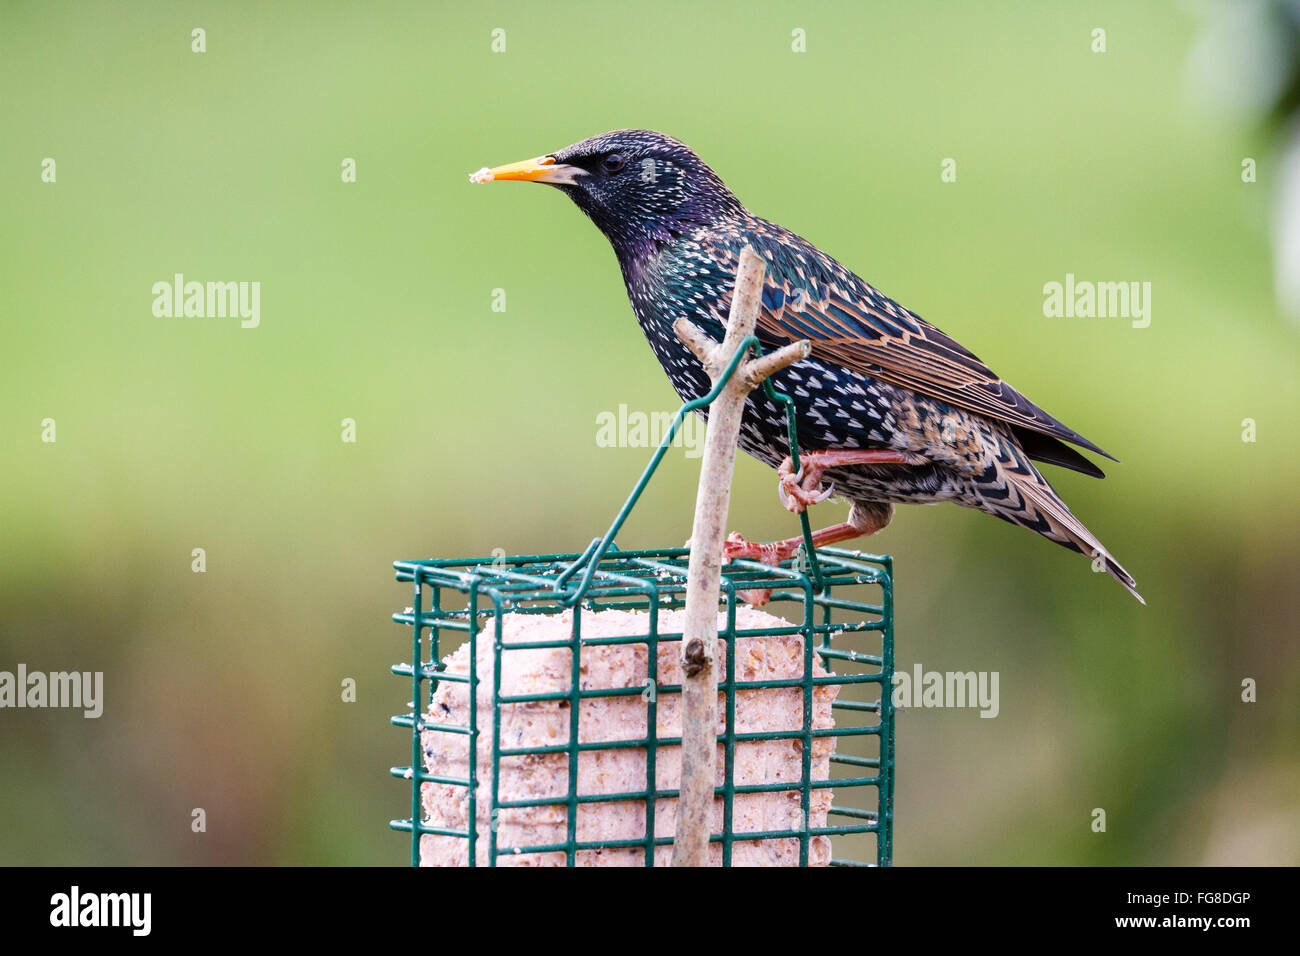 Starling (Sturnus vulgaris) standing on a suet block in an English garden, East Sussex, England, UK - Stock Image